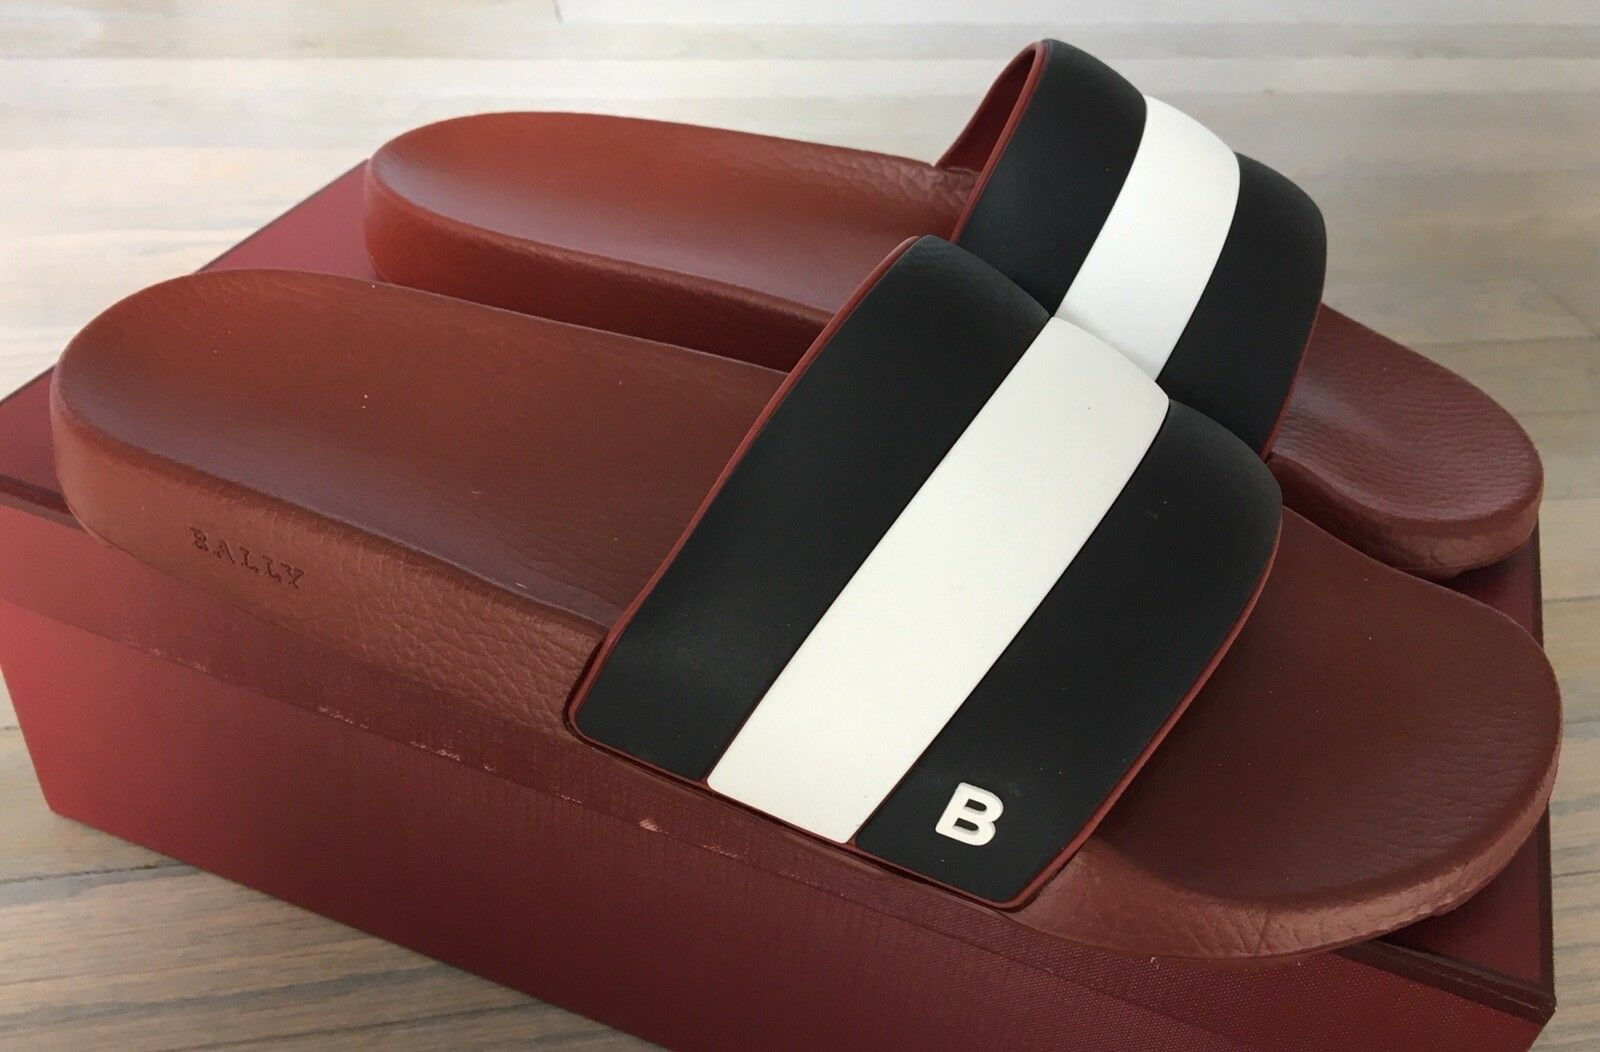 Bally Sleter Red Rubber Sandals size US 12 Made in